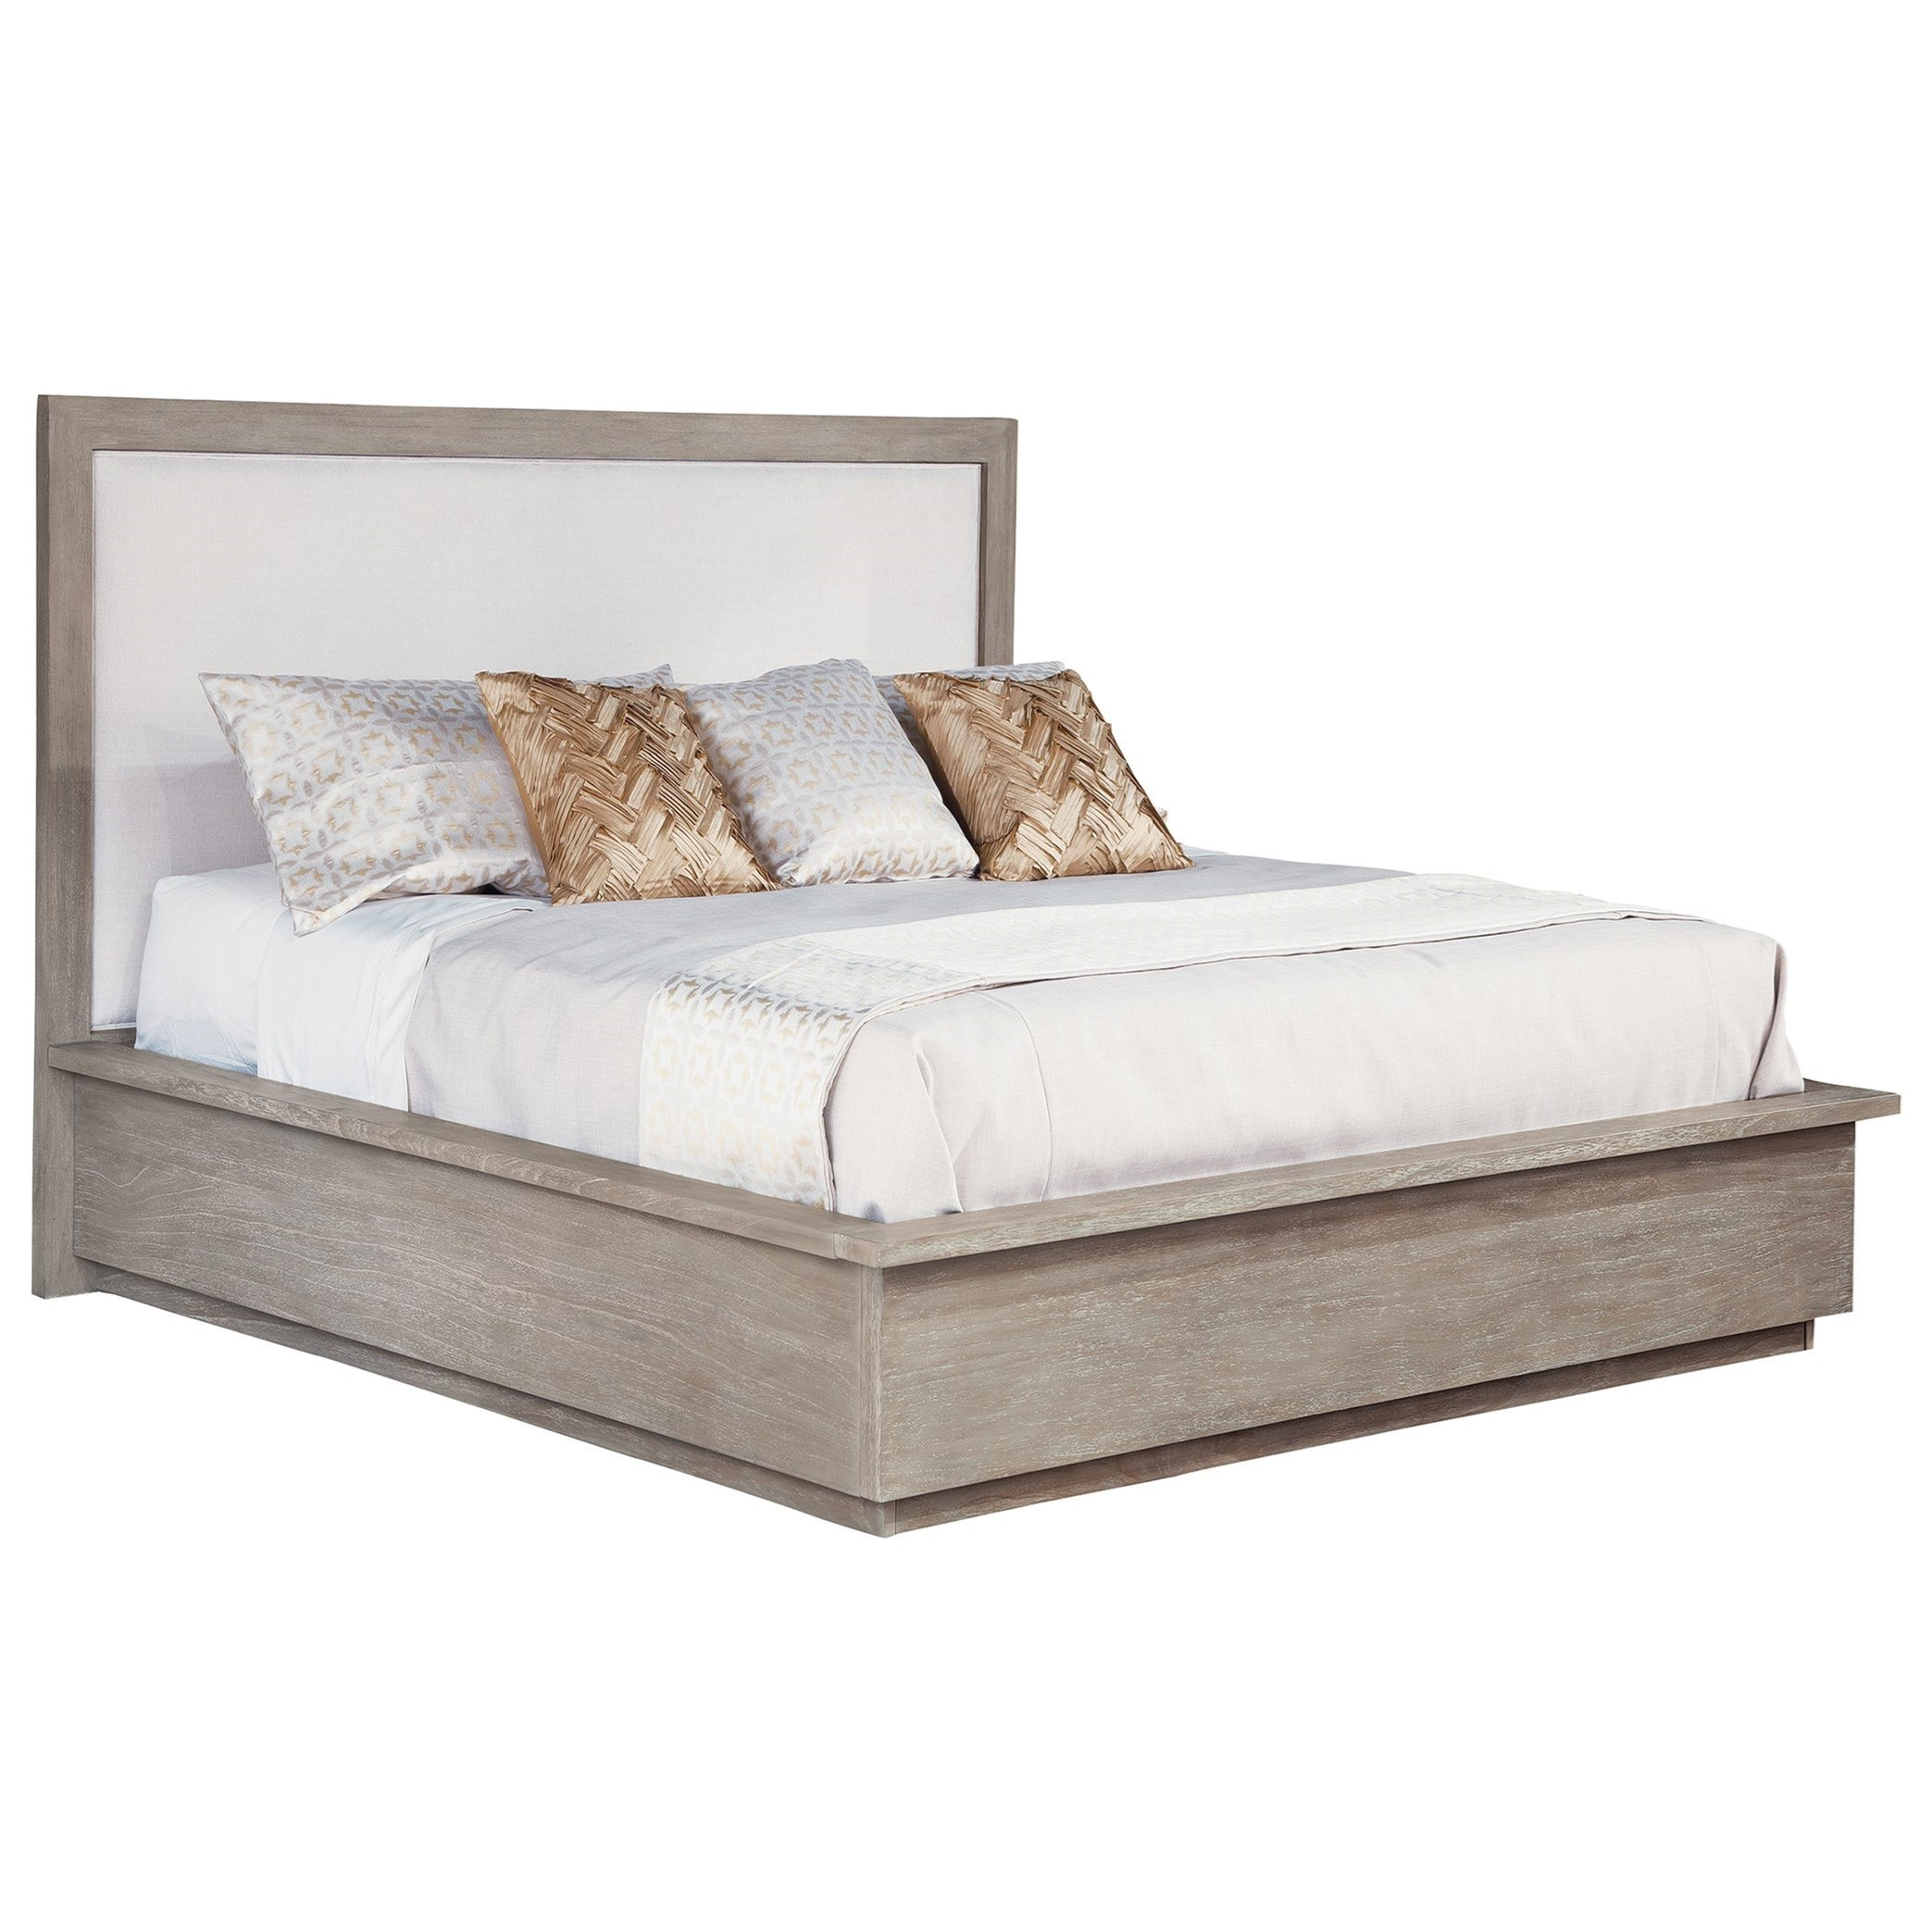 Berkeley Heights Upholstered Panel King Bed by Hekman at Alison Craig Home Furnishings